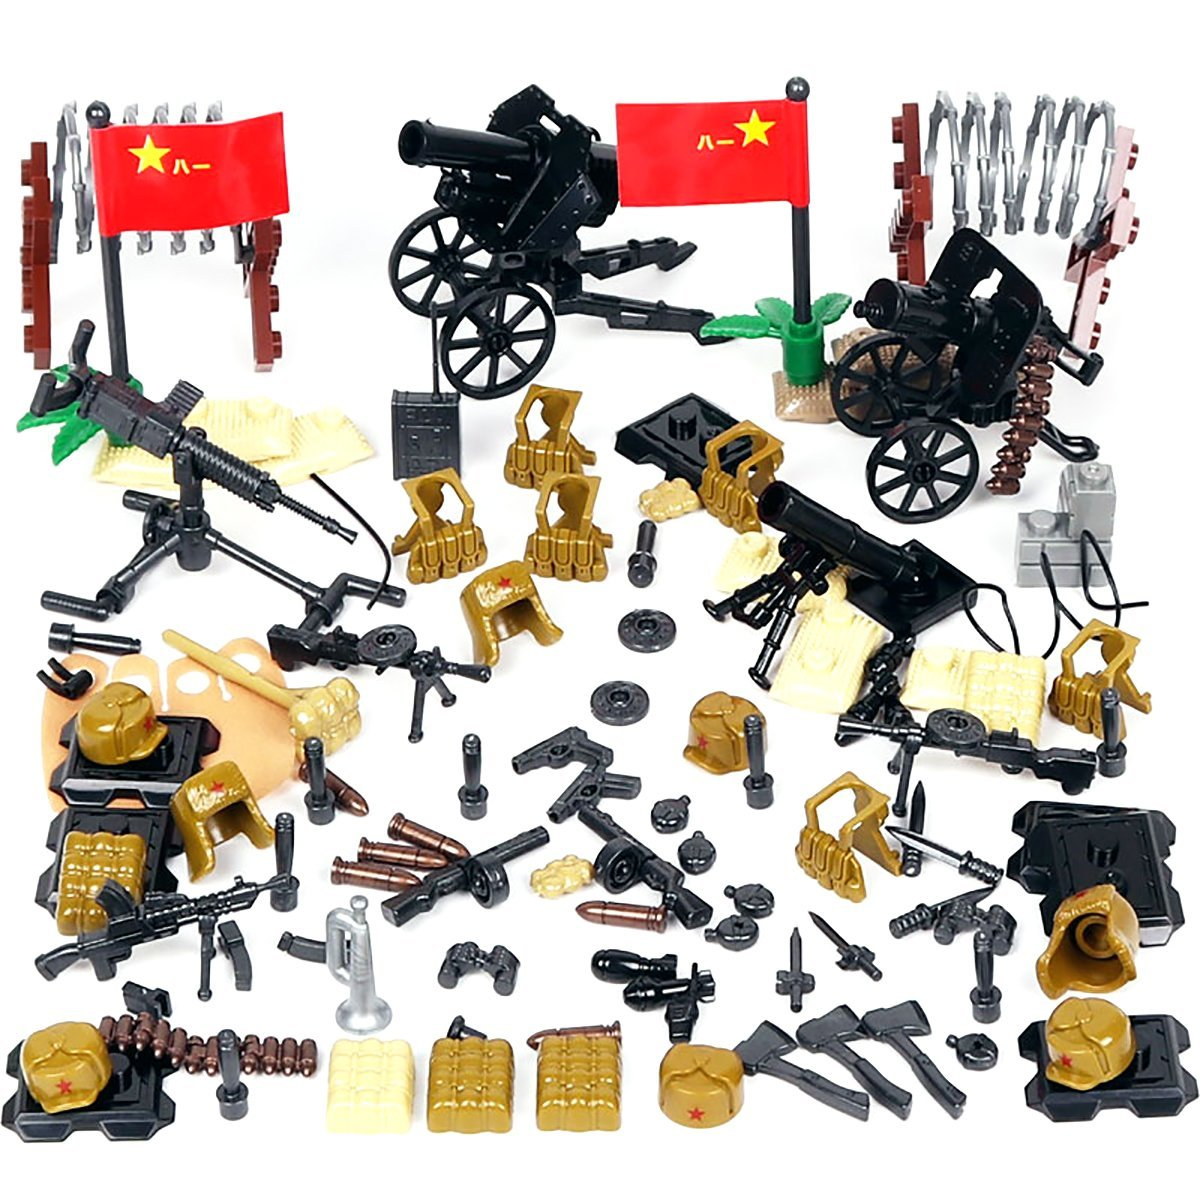 Kolobok WW2 Toys Sino-Japanese War Set WWII Chinese Army Men Infantry  Weapons Pack Guns and Accessories for Soldier Minifigures Building Blocks